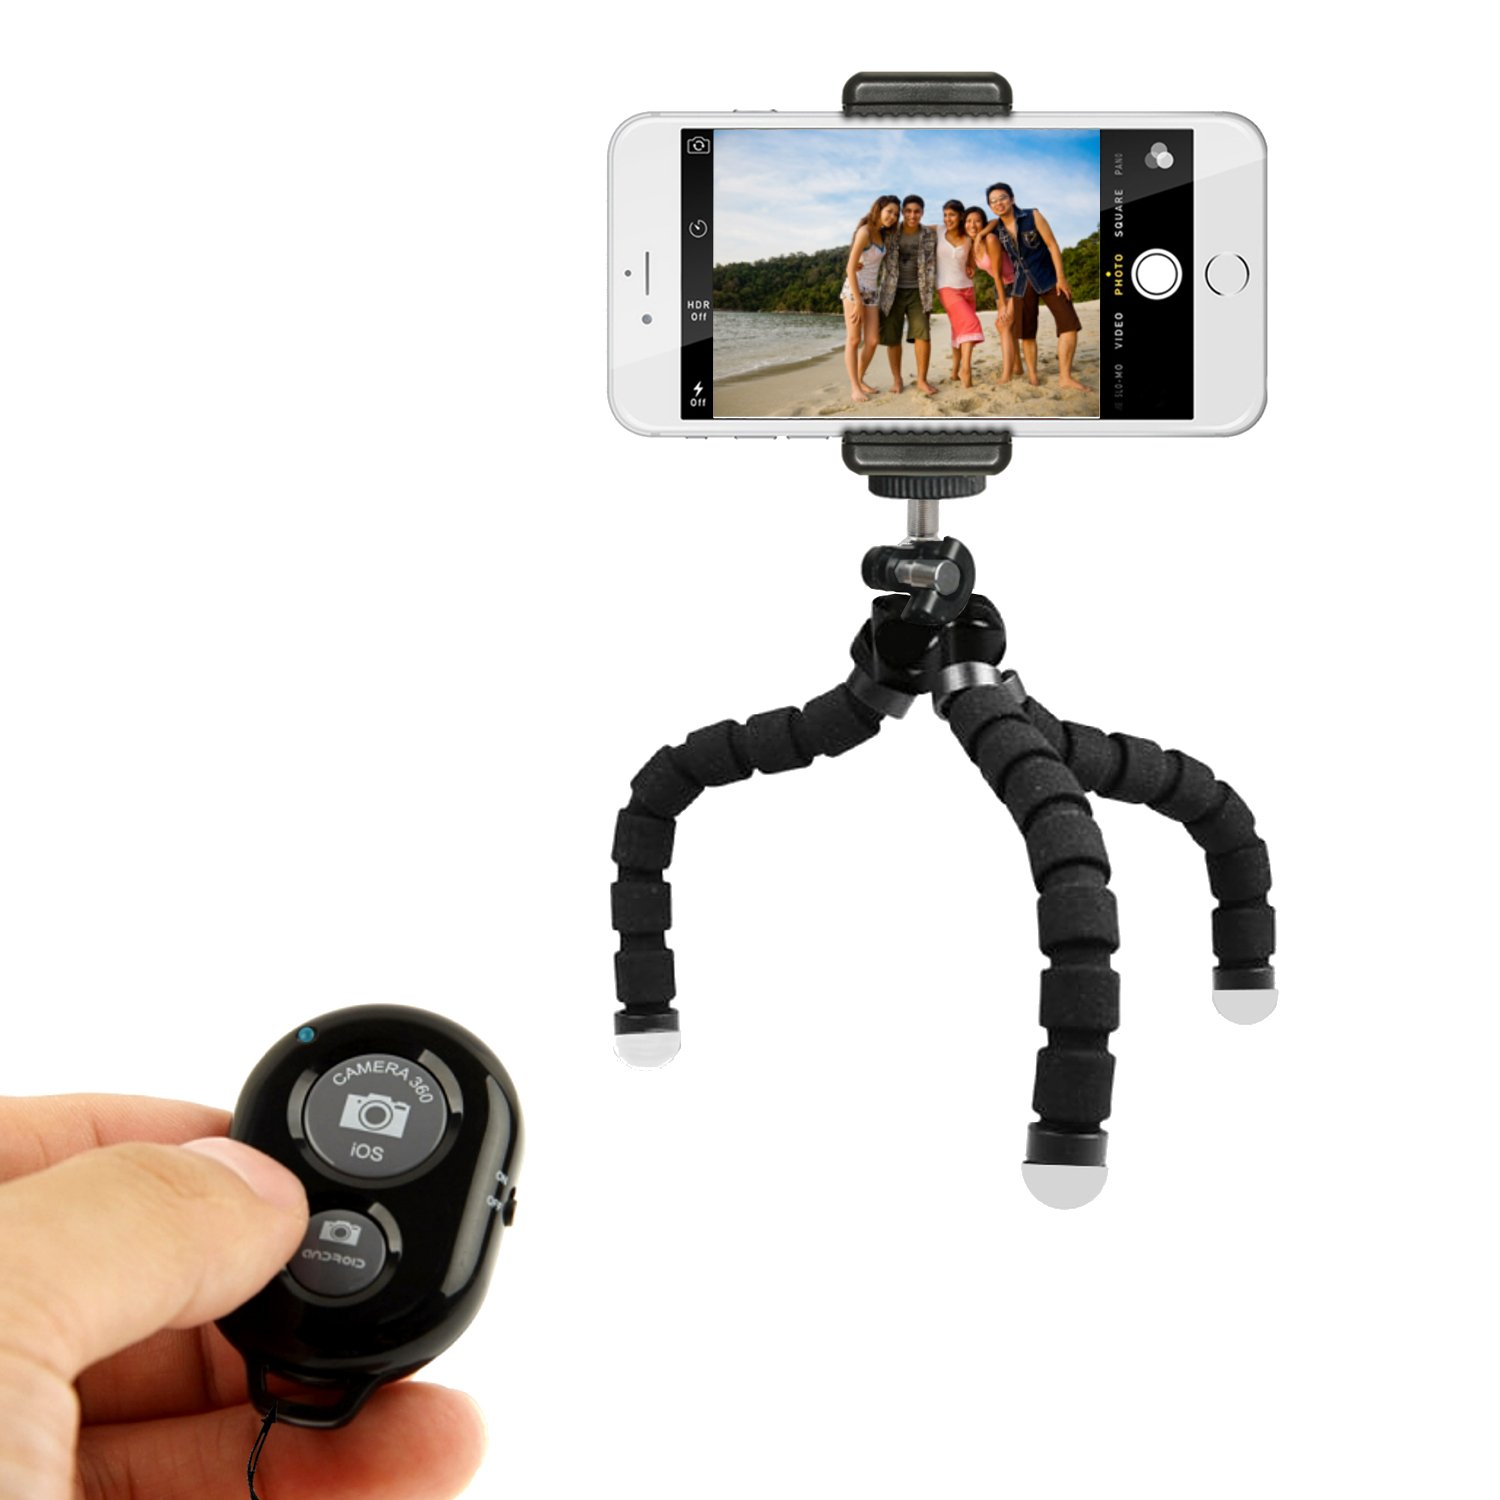 Mobile tripod gifts for travelling